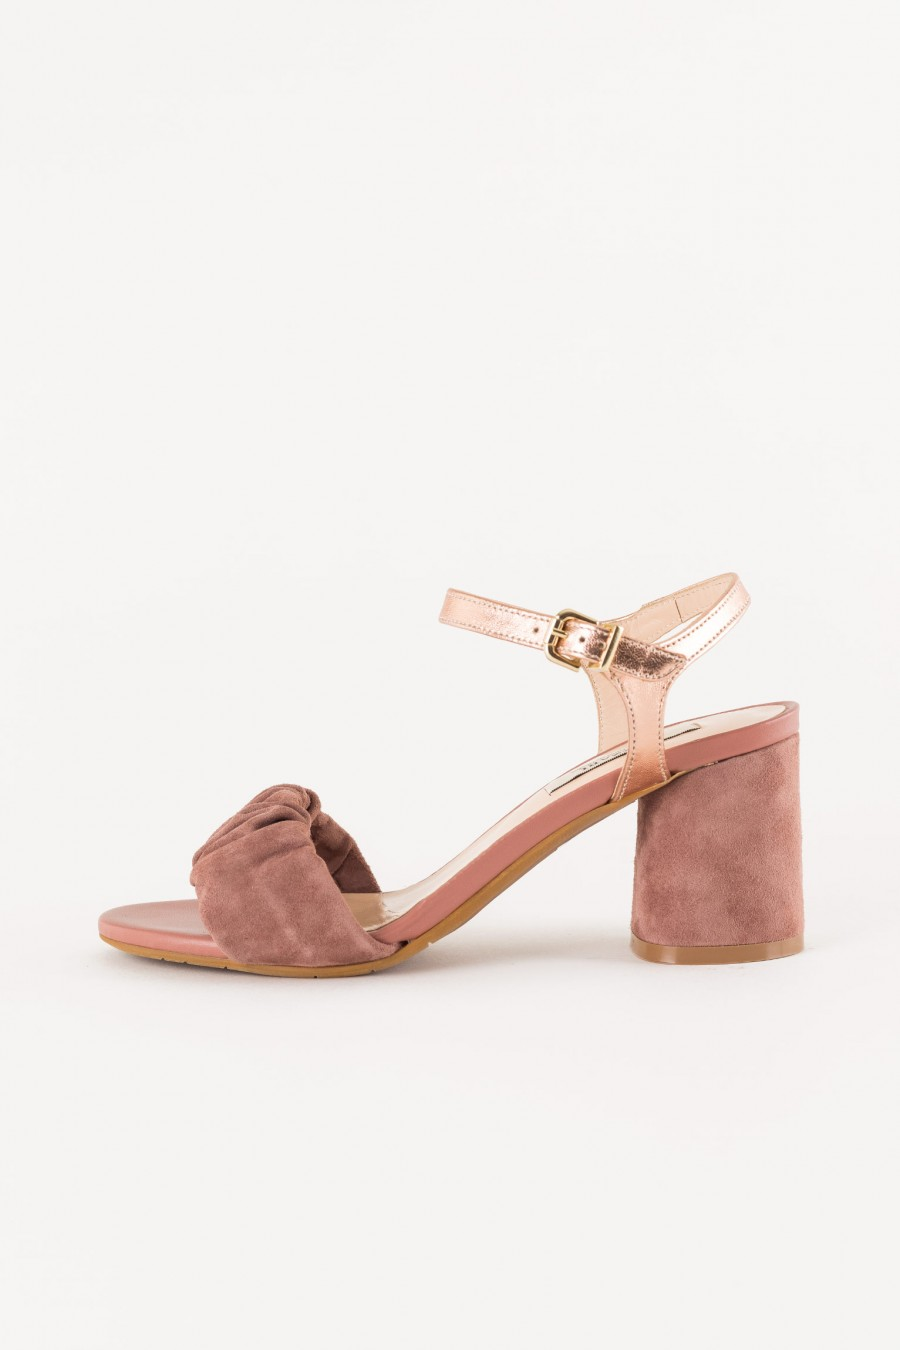 antique pink shoe with band